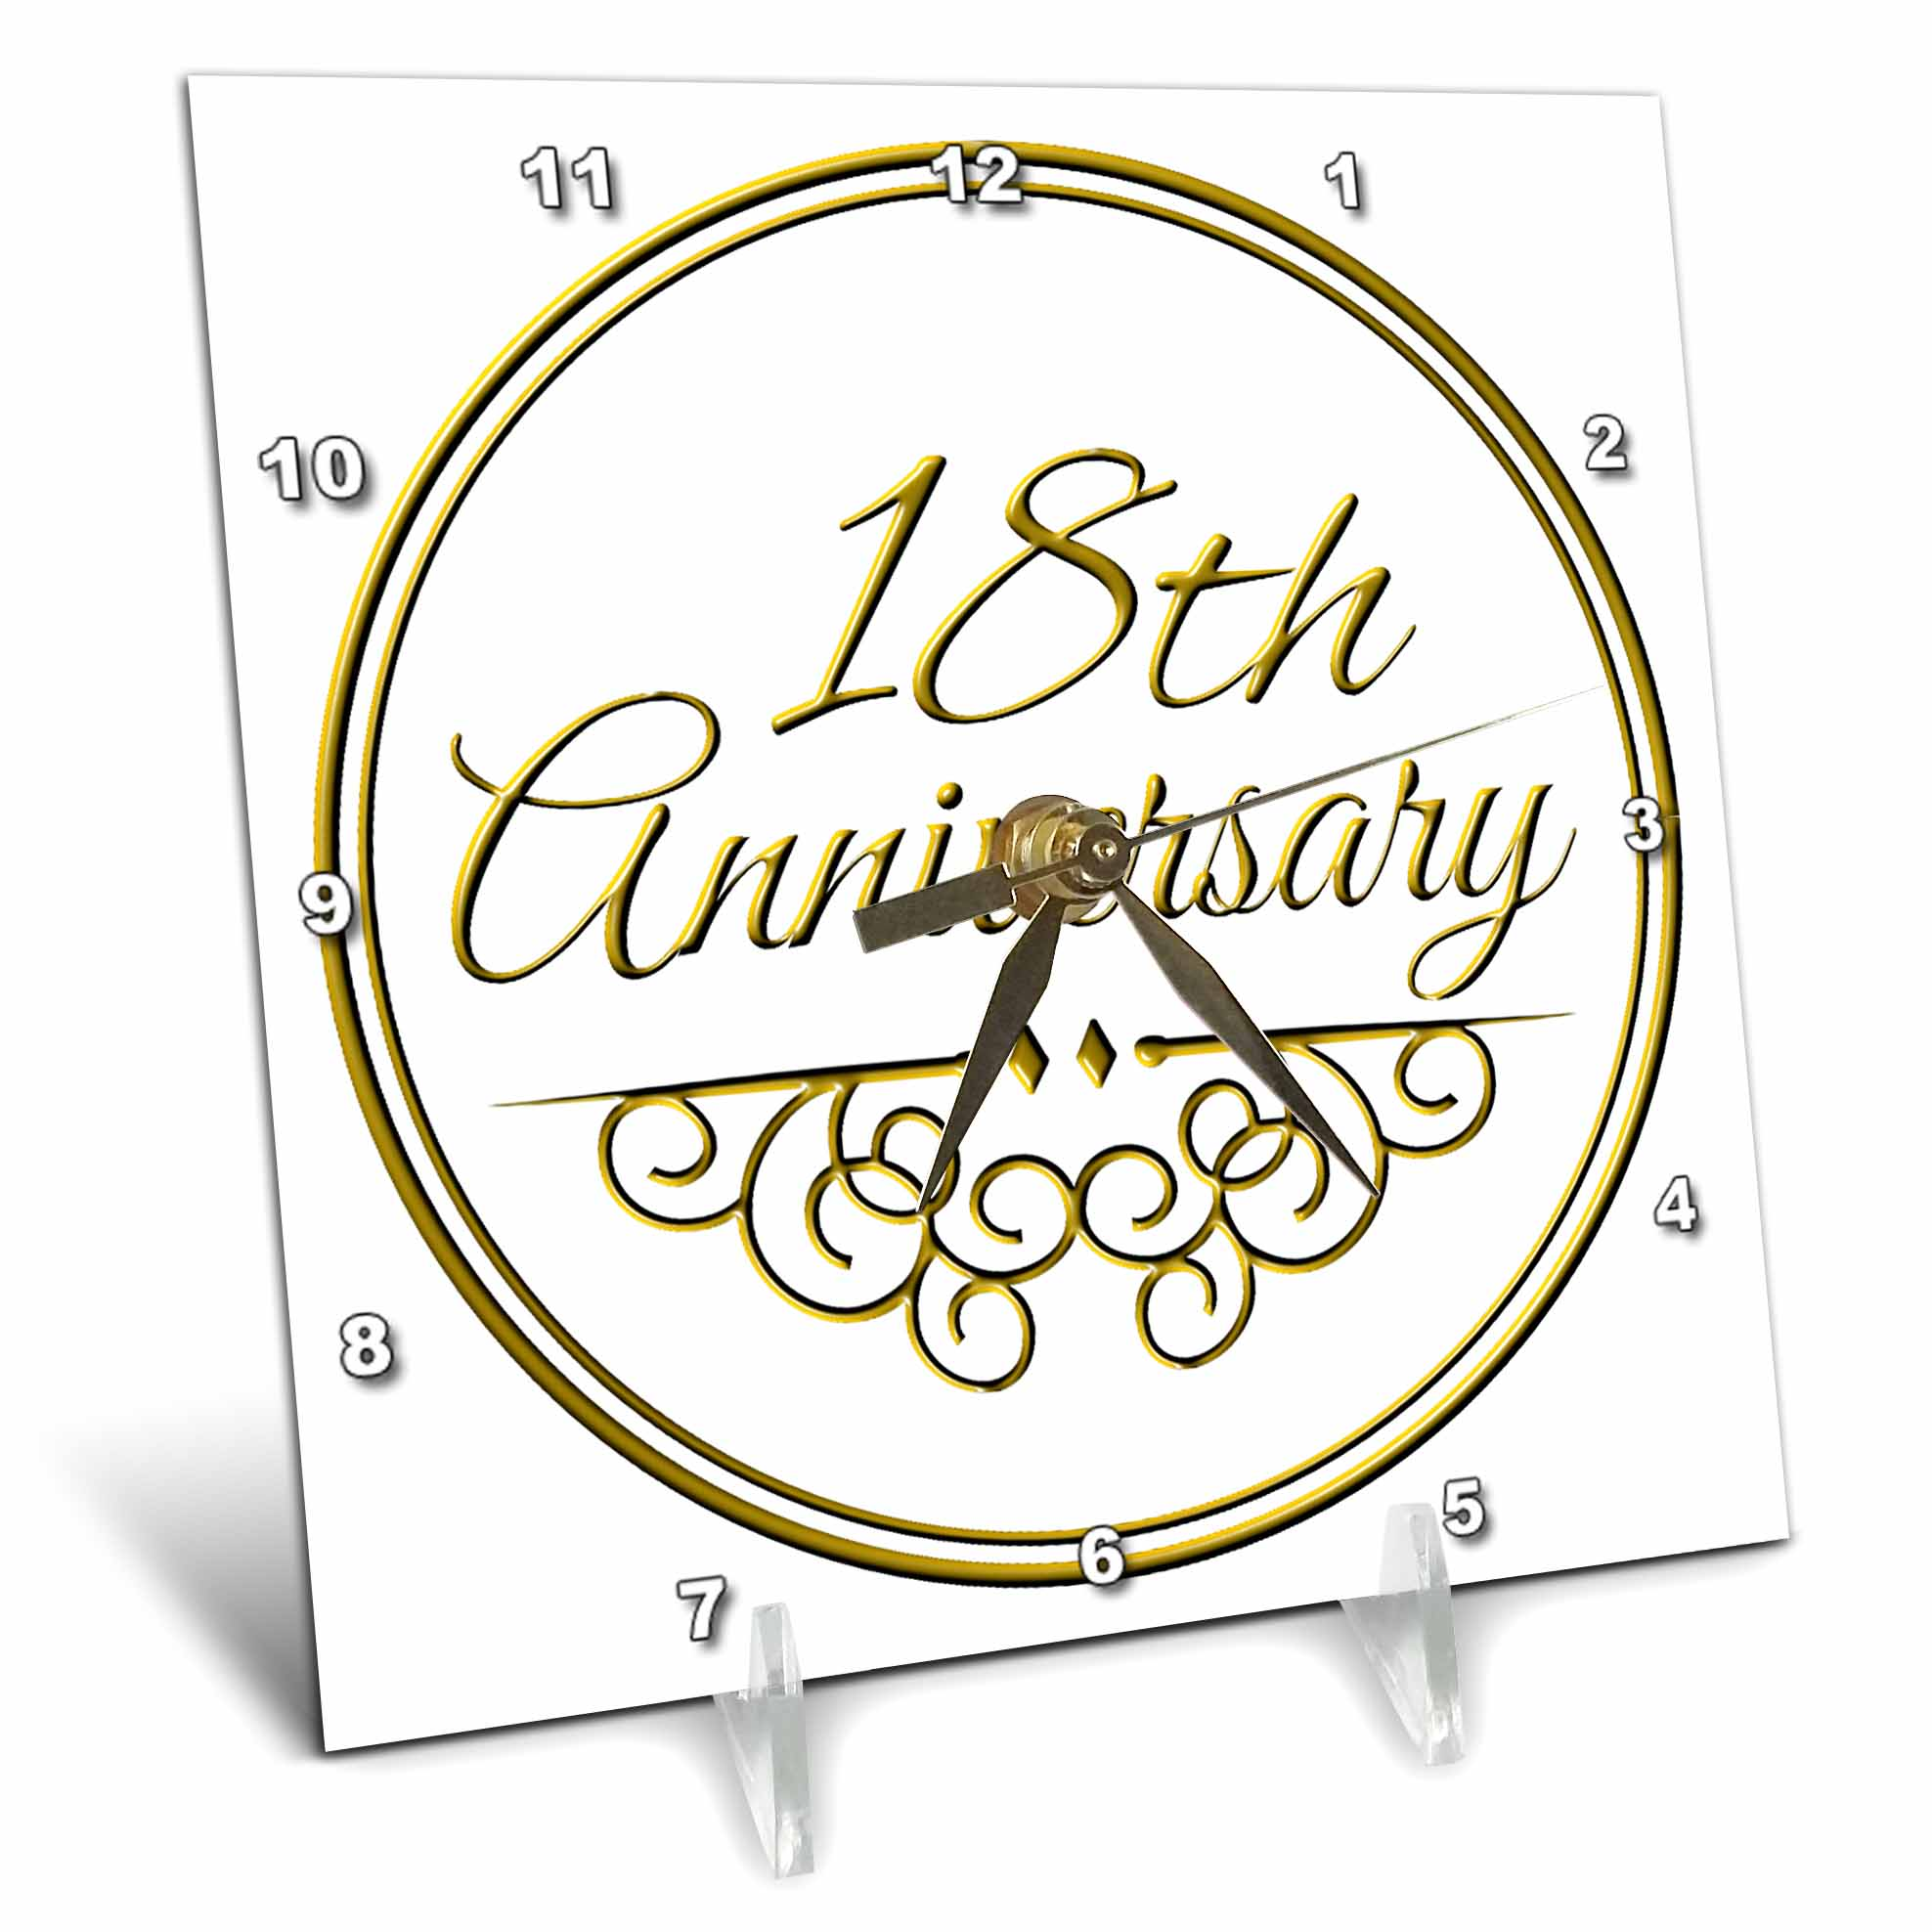 3dRose 18th Anniversary gift gold text for celebrating wedding anniversaries 18 years married together, Desk Clock, 6 by... by 3dRose